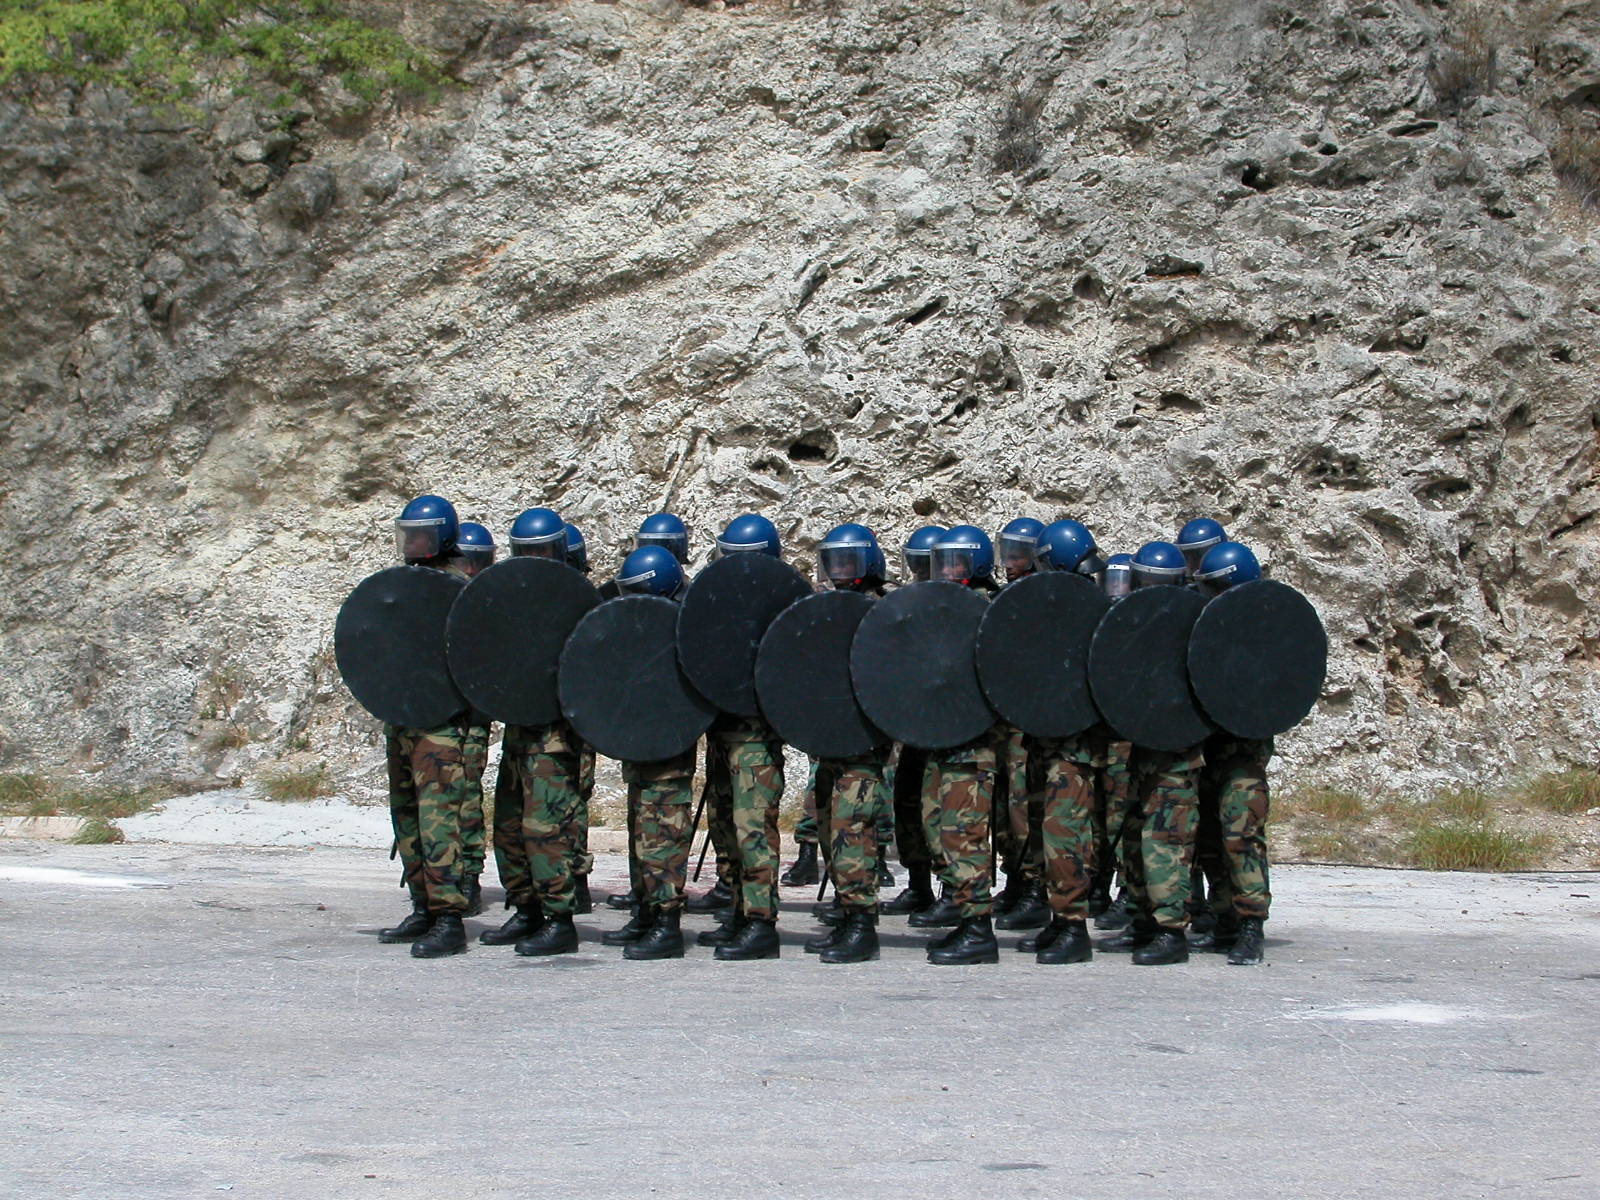 MP military riot control shields shield for fun try adding this image in front of them: http://69.44.157.231/image.php?image=b1capricornbaby002.jpg